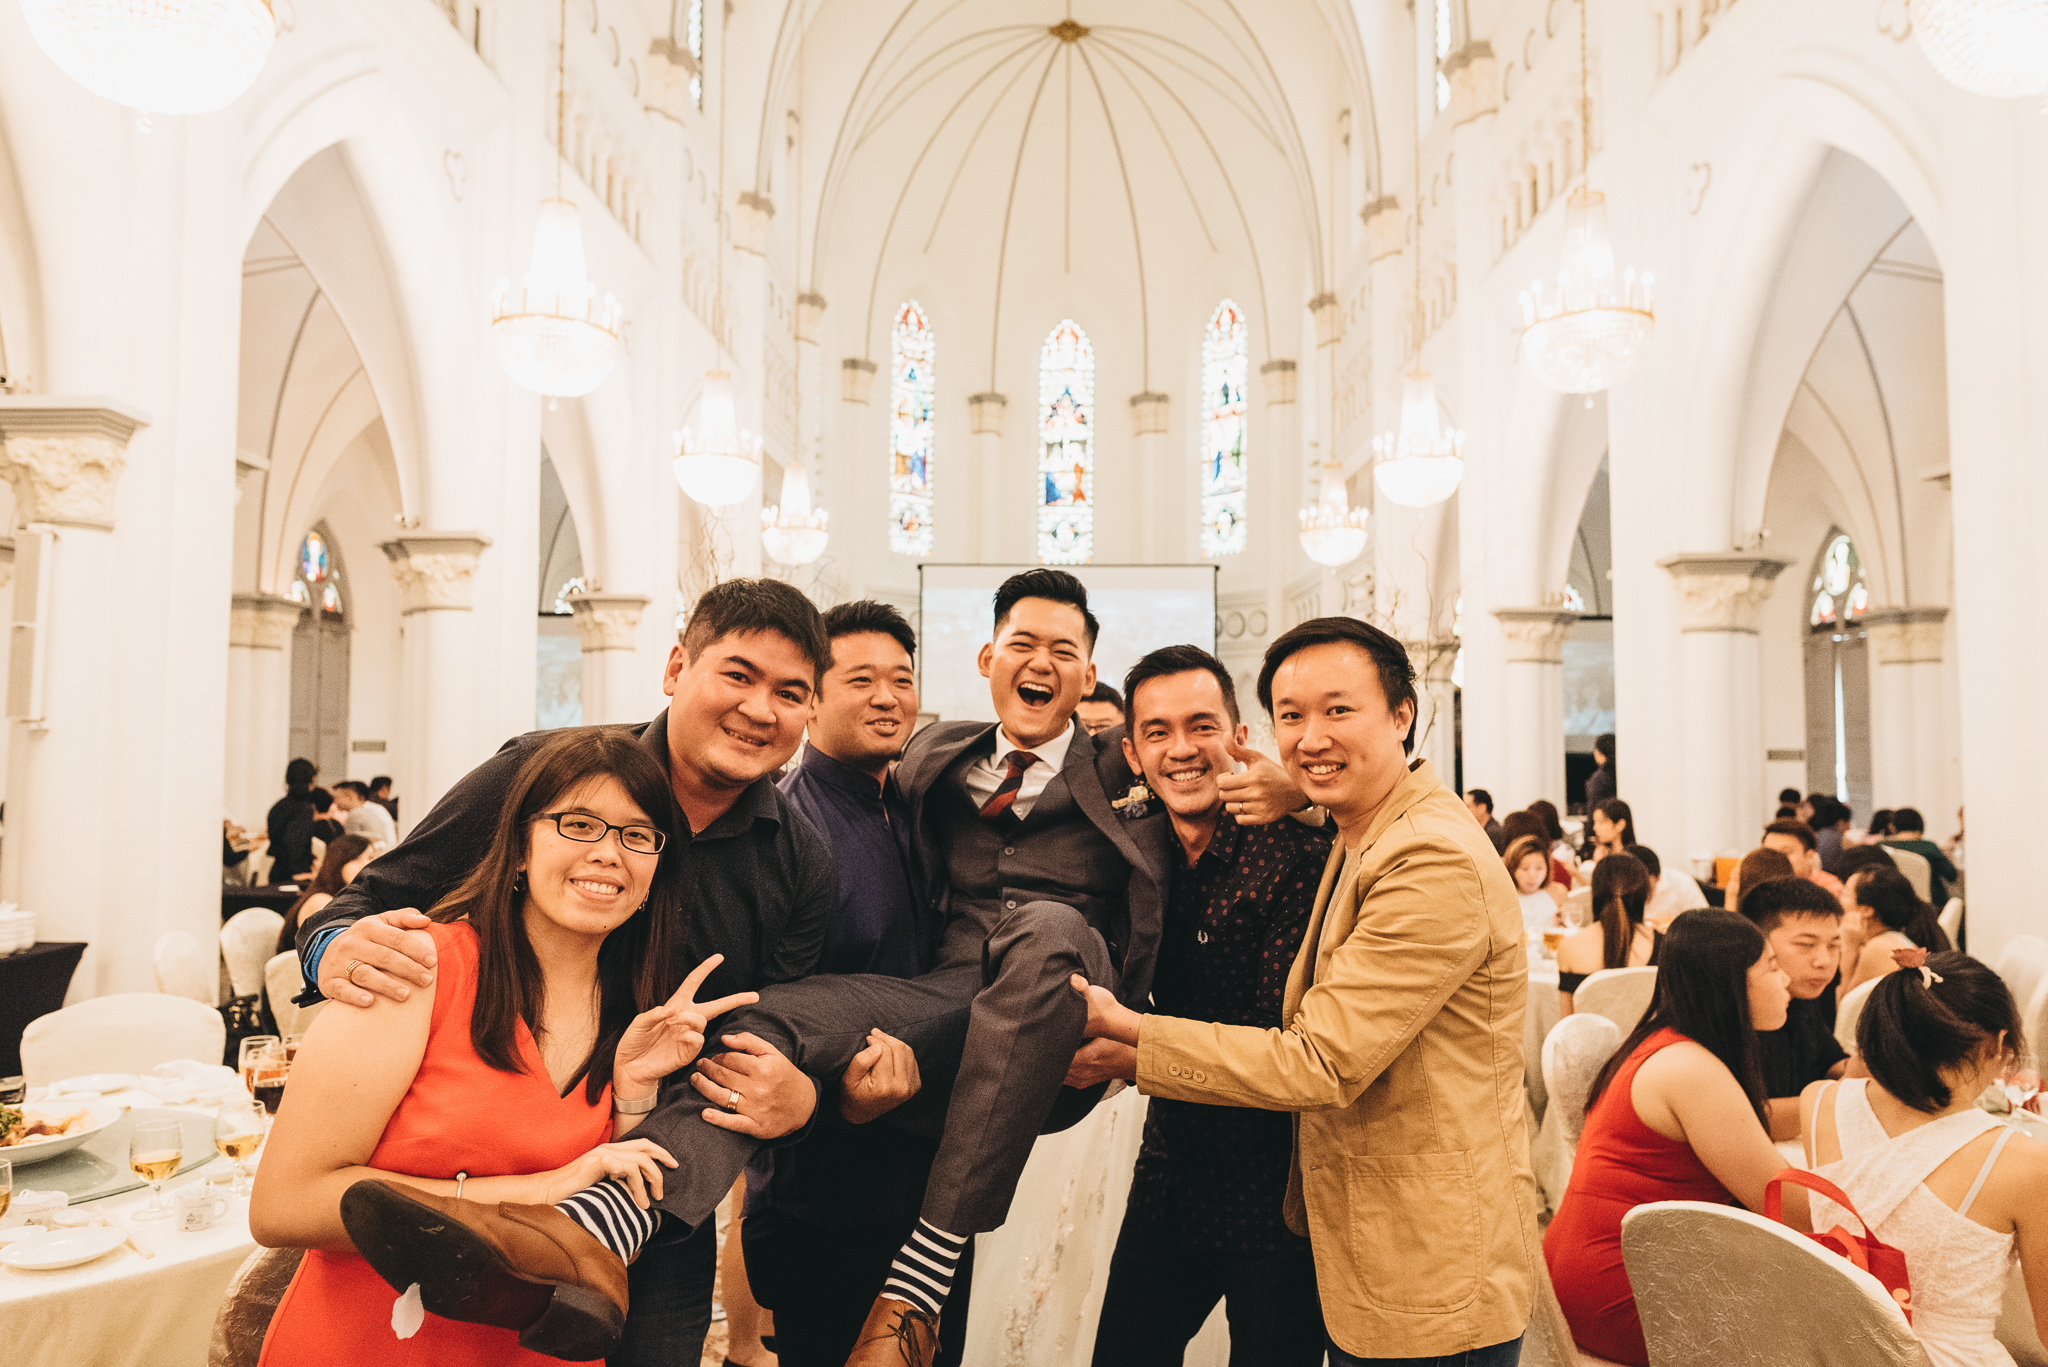 Alice & Wei Bang Wedding Day Highlights (resized for sharing) - 119.jpg